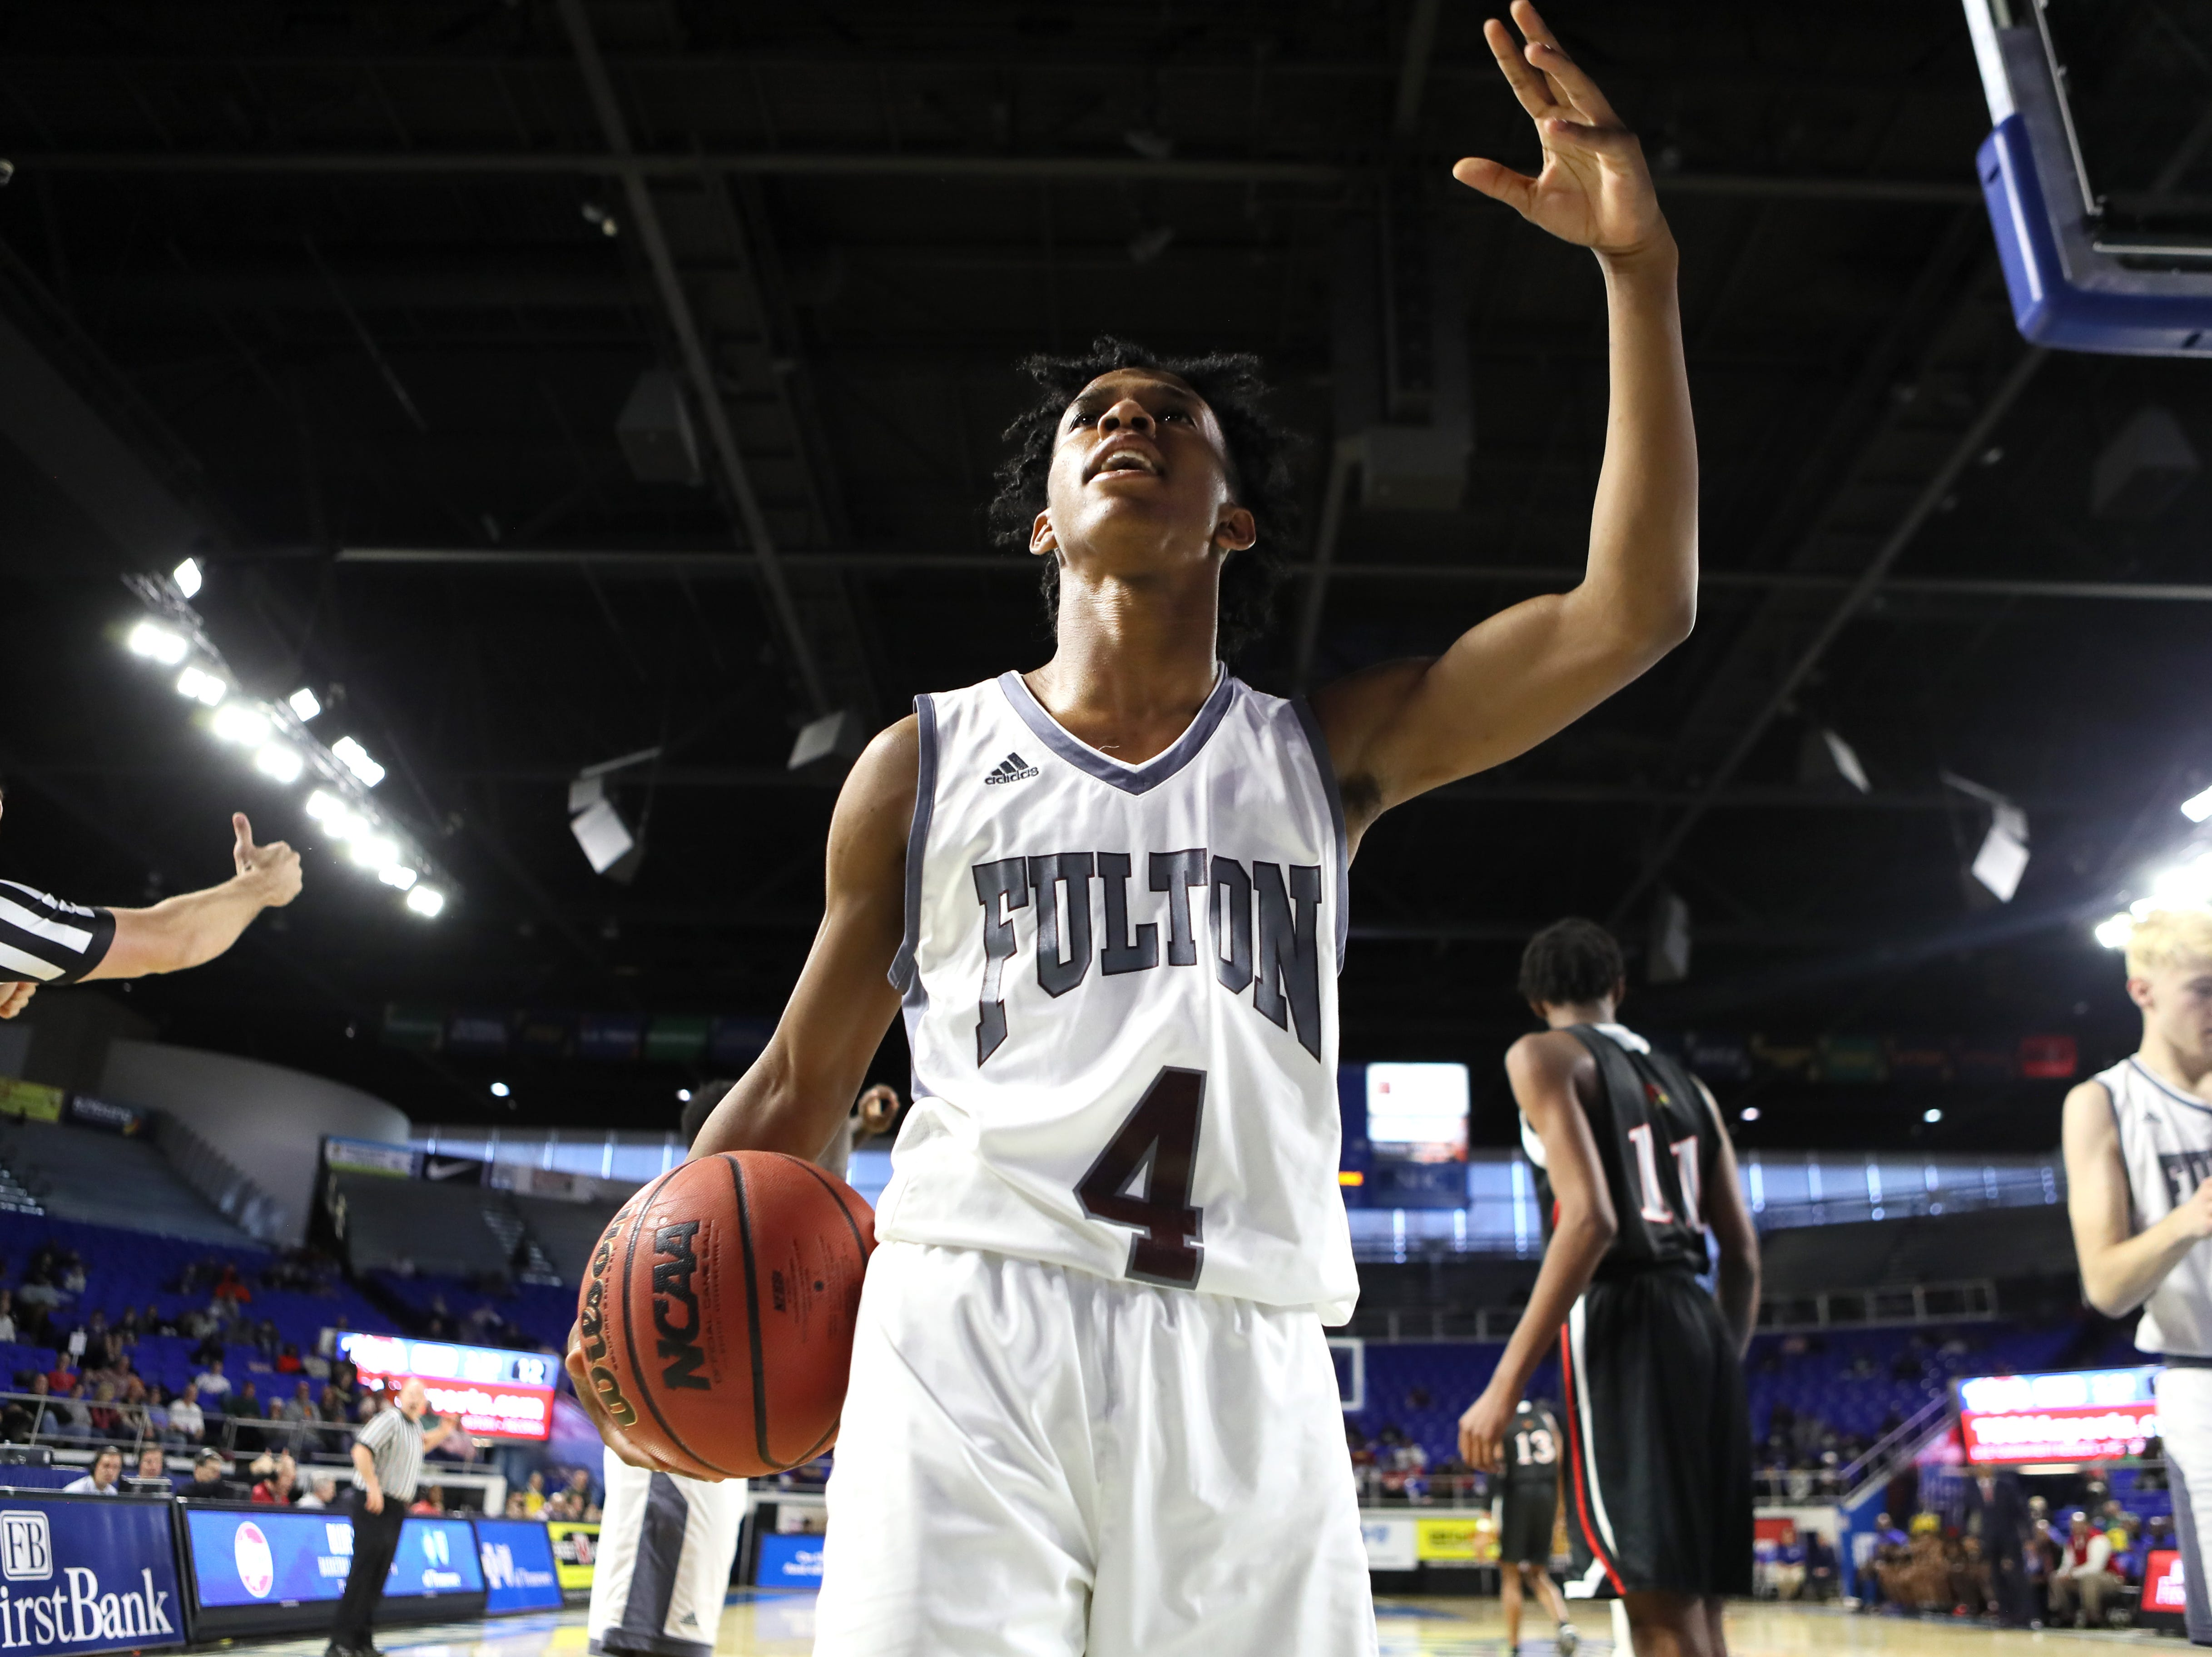 Fulton's Edward Lacy celebrates a defensive stop against Wooddale during the Class AA boys basketball state championship game at the Murphy Center in Murfreesboro, Tenn. on Saturday, March 16, 2019.